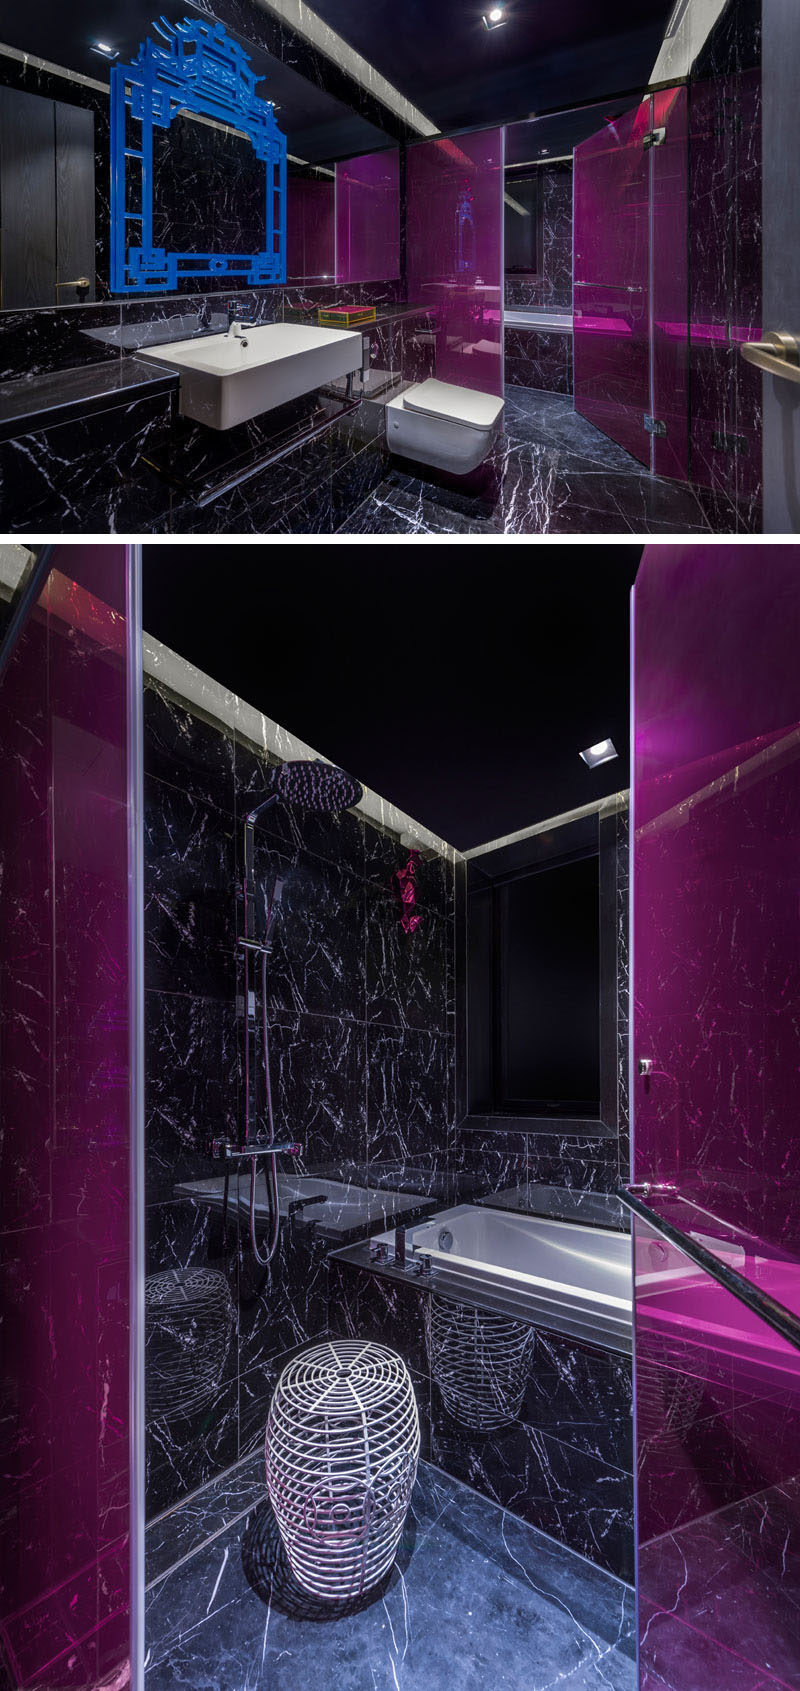 This bold and modern hotel bathroom has pops of color to brighten up the black stone with scattered white veins. #ModernBathroom #BlackBathroom